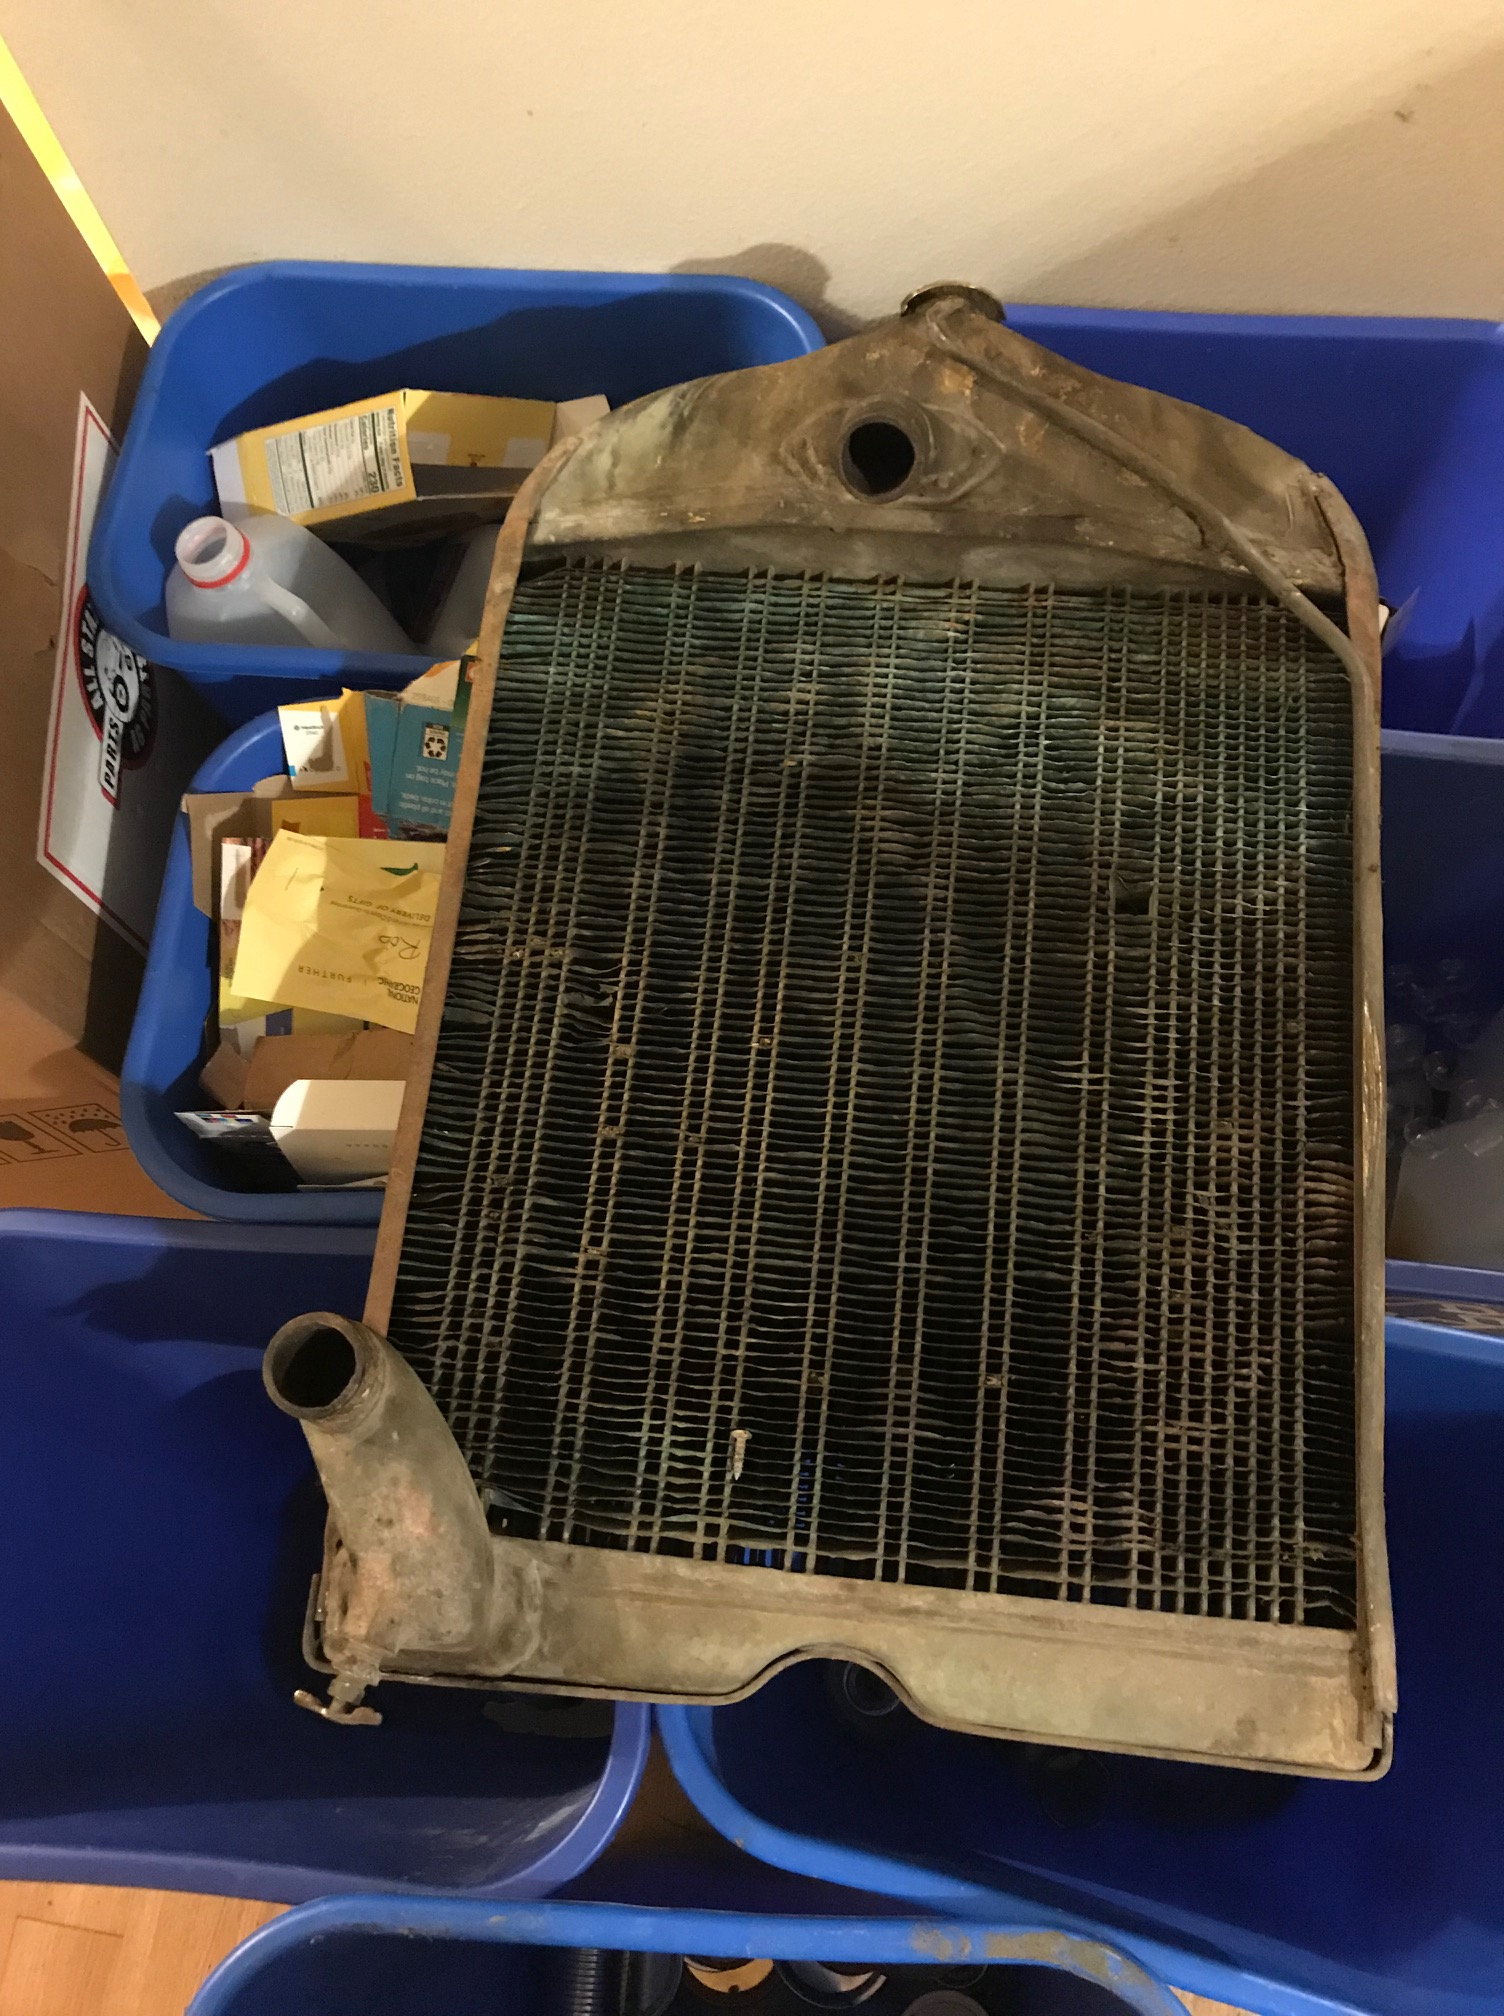 Photograph of tractor radiator sitting on the recycling bins